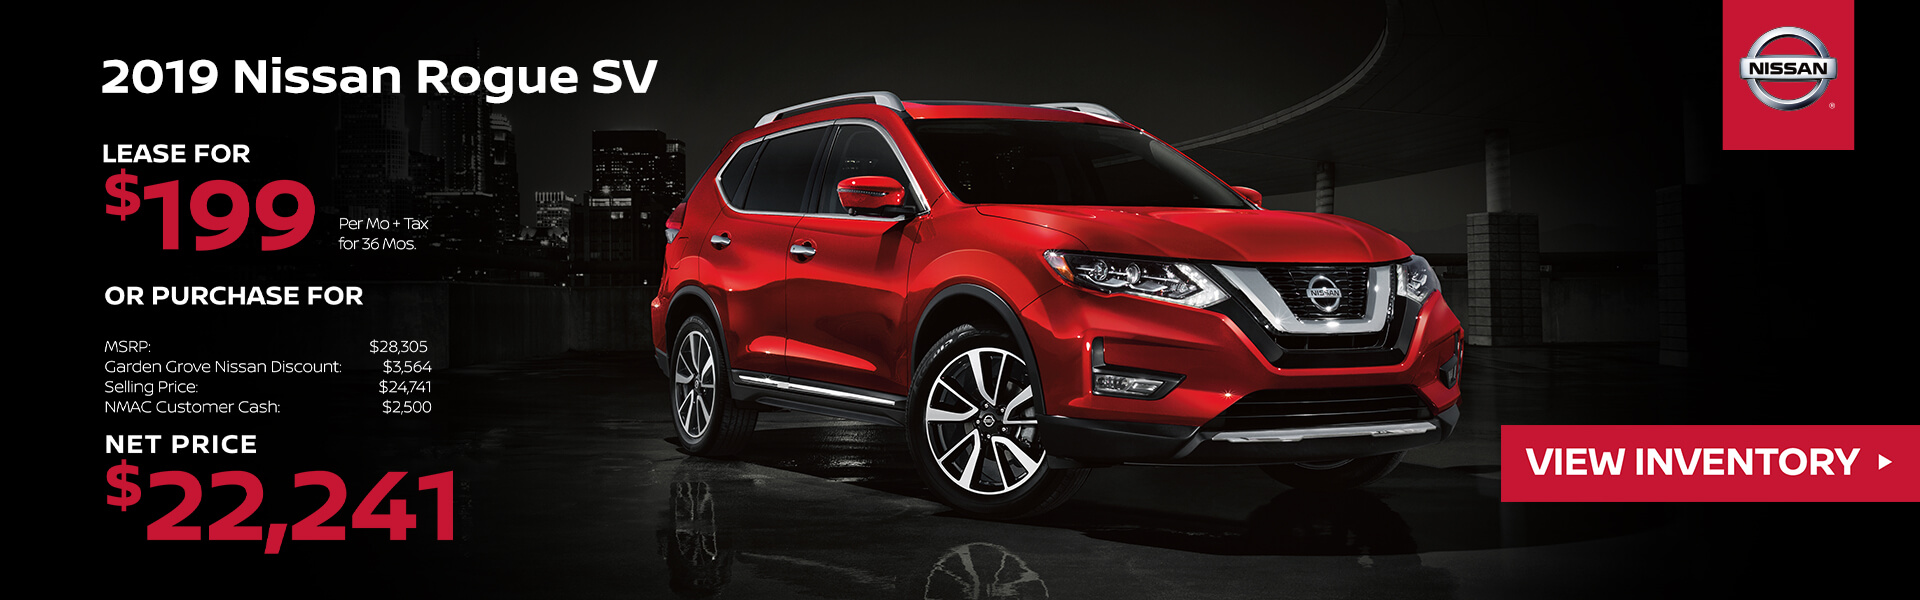 2019 Nissan Rogue Lease for $199